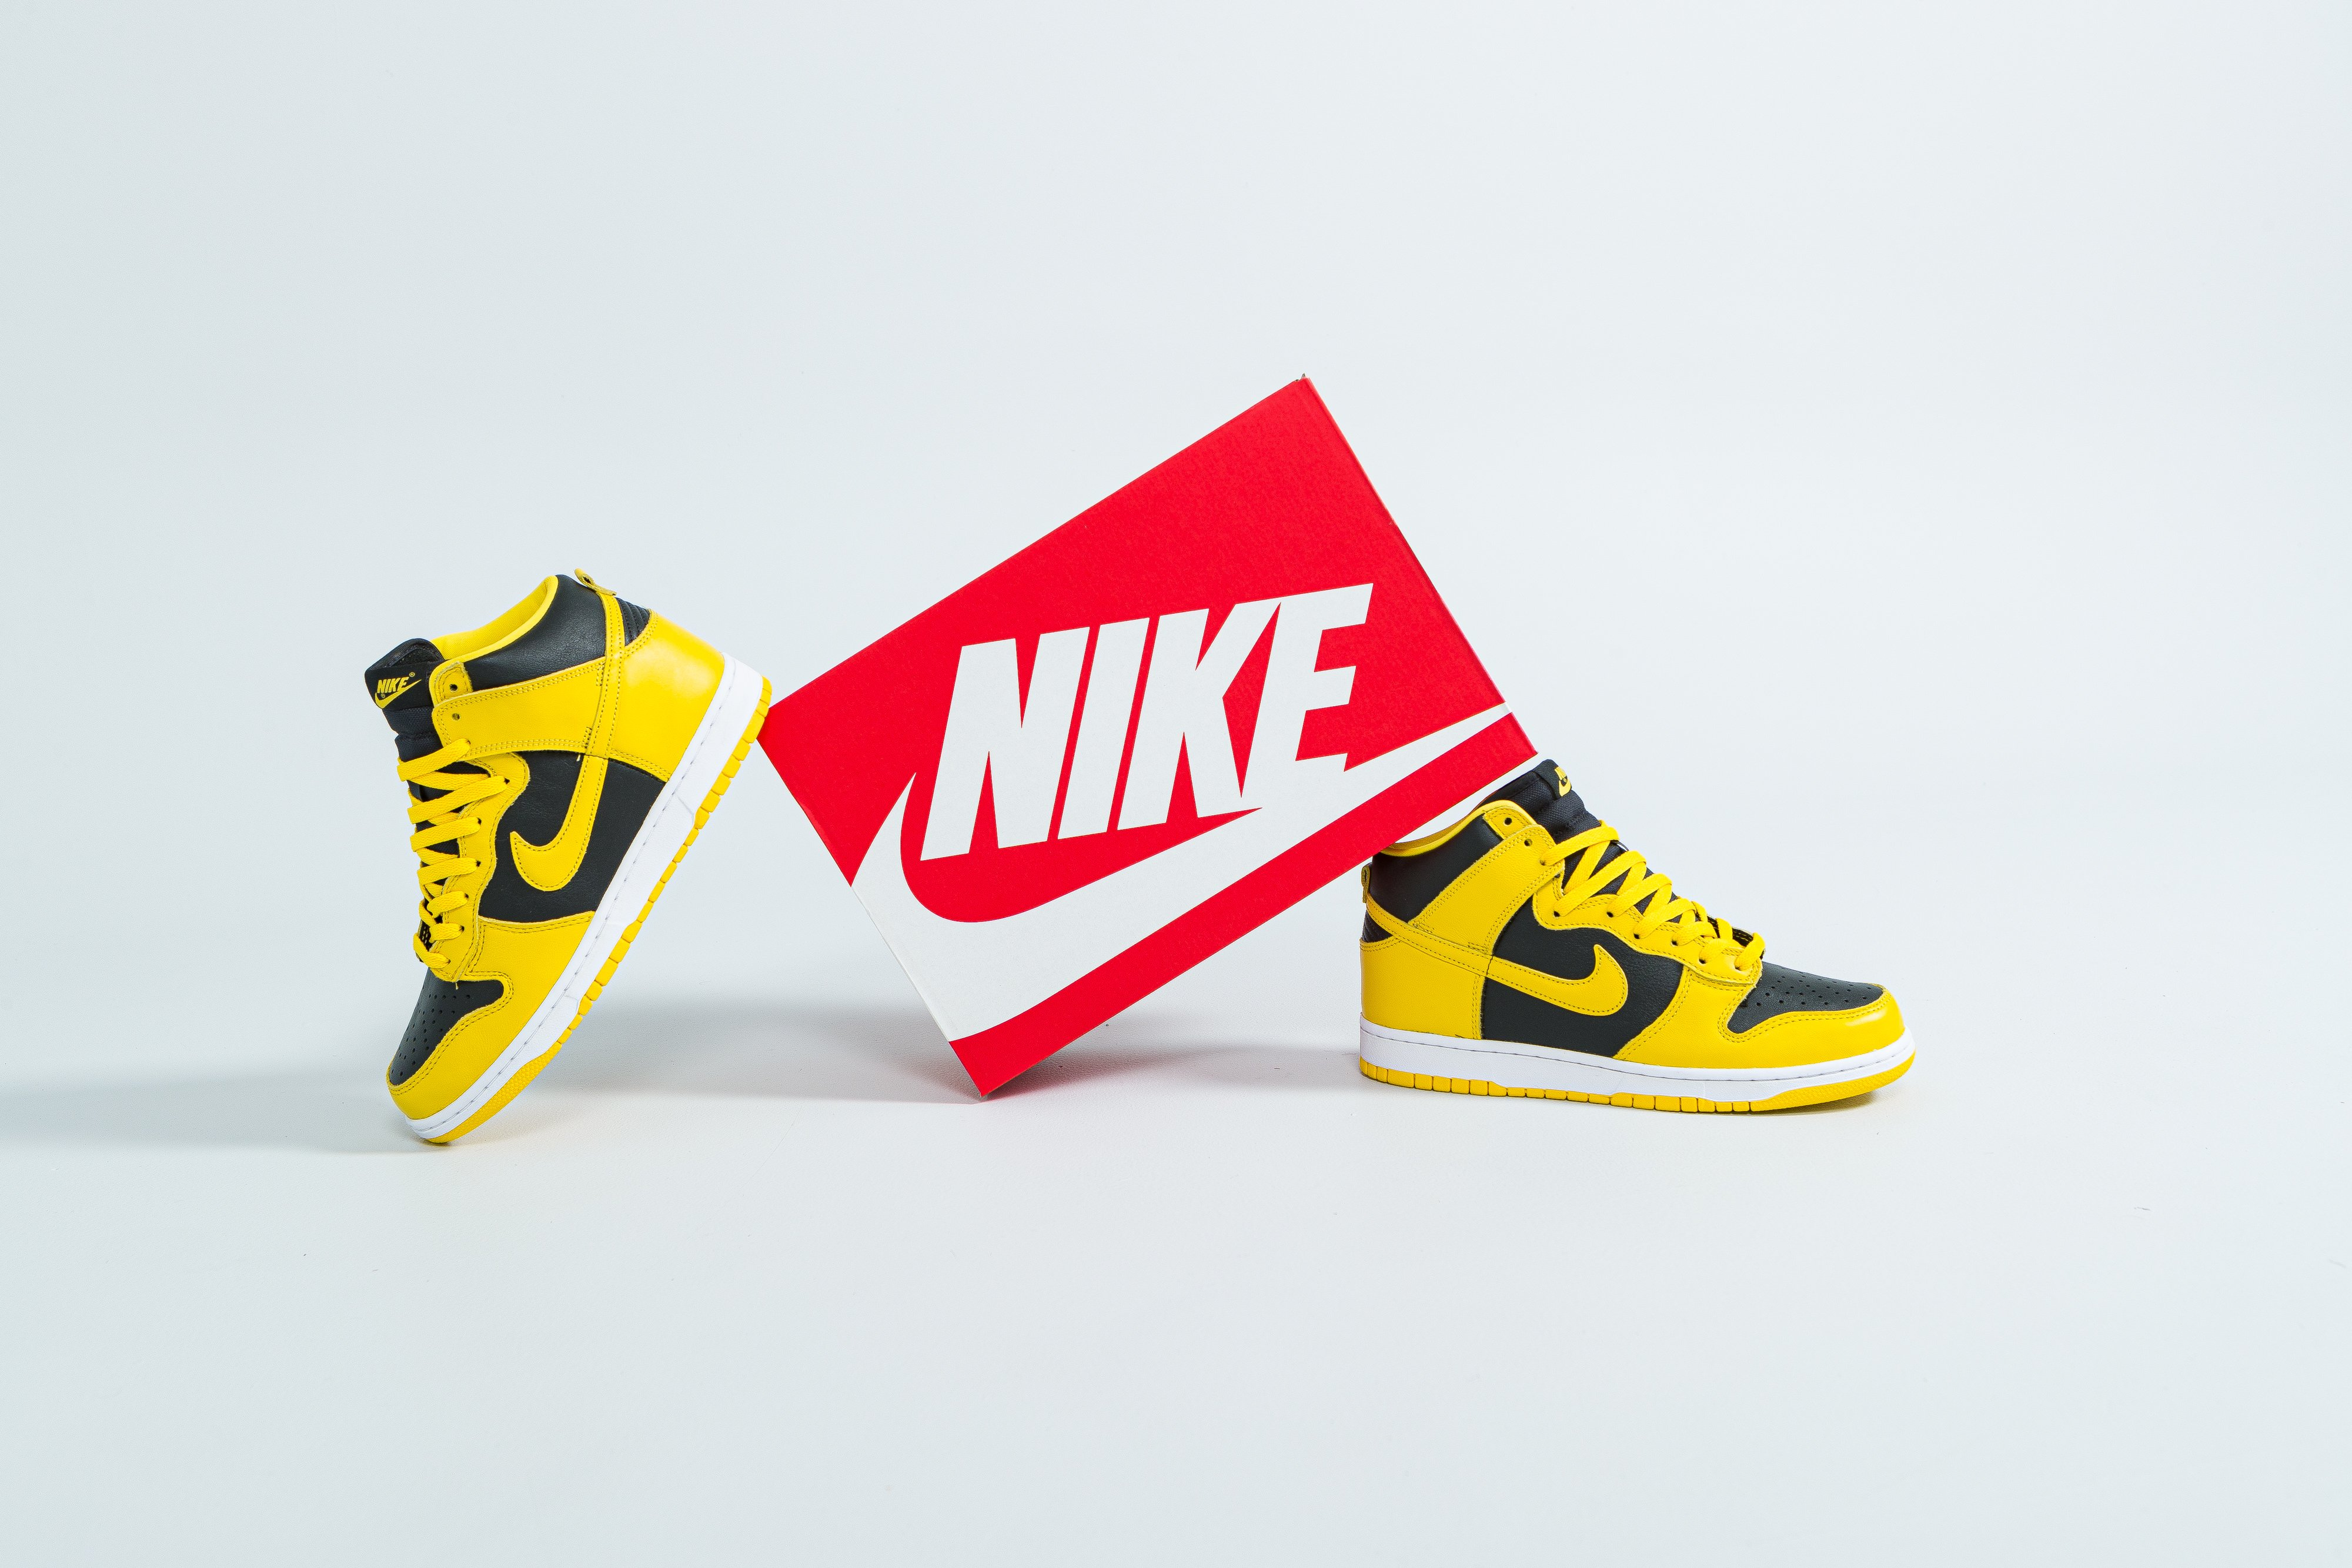 Nike - Dunk Hi SP - Black/Varsity Maize - Up There